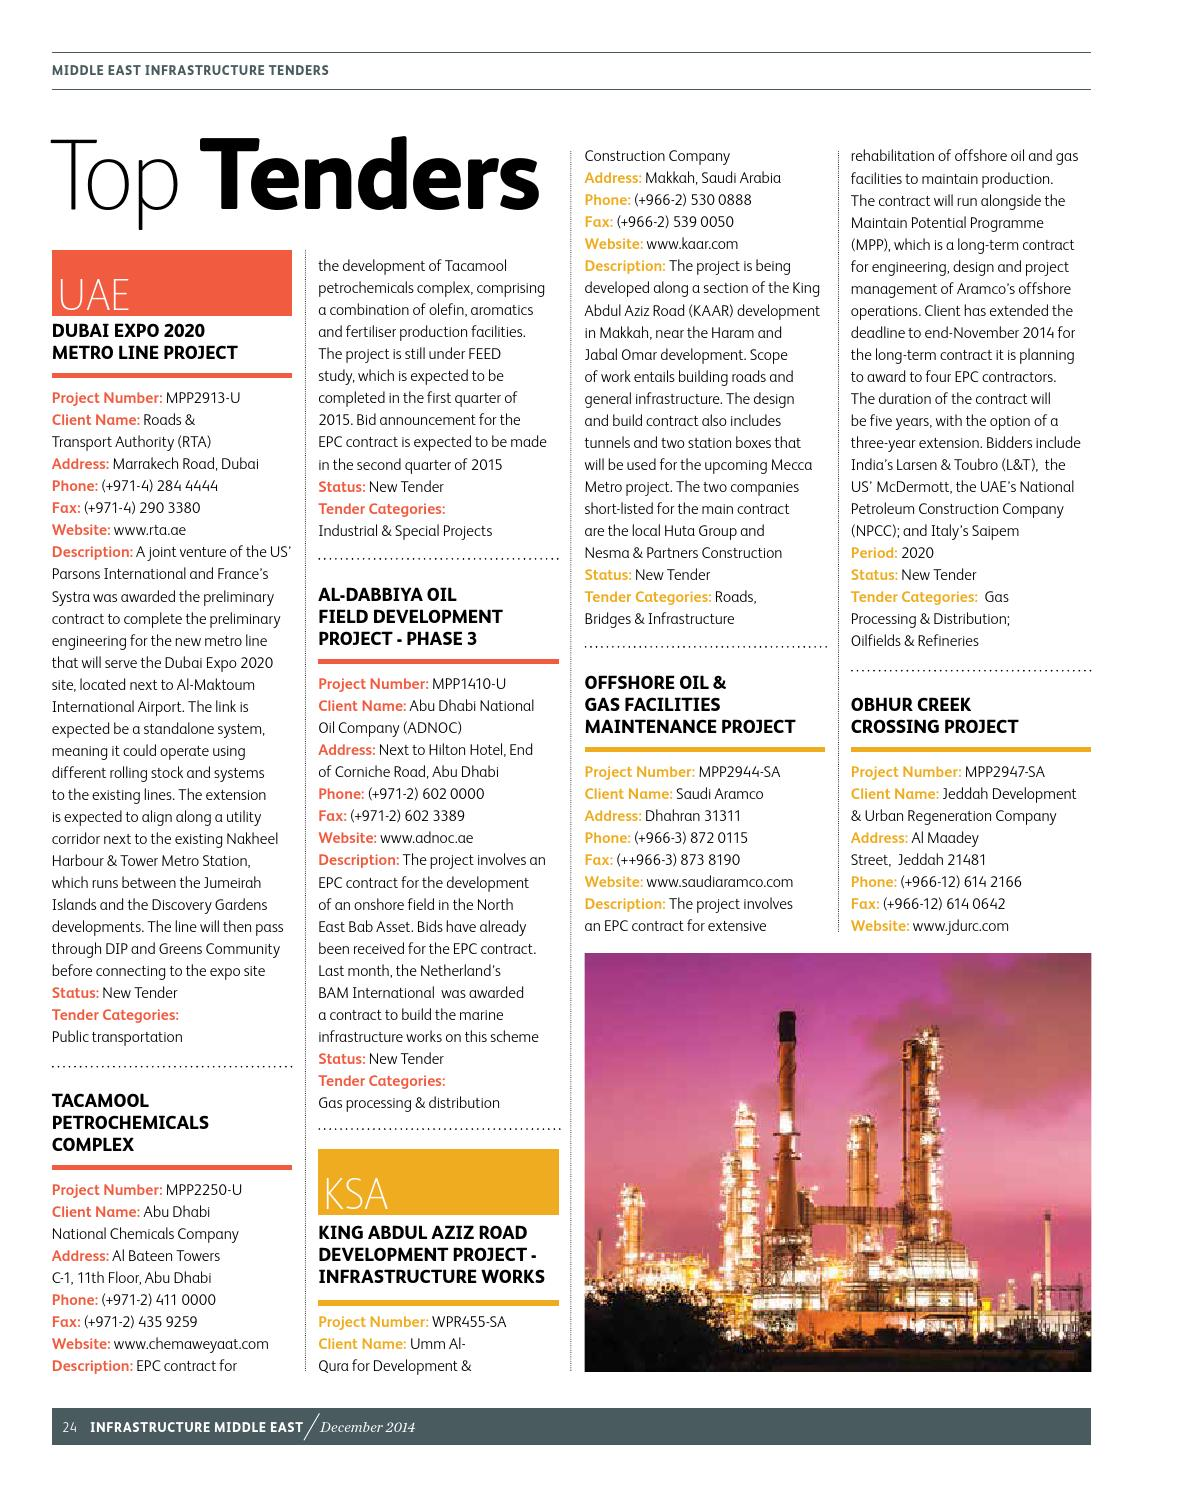 Infrastructure Middle East December 2014 by Infrastructure